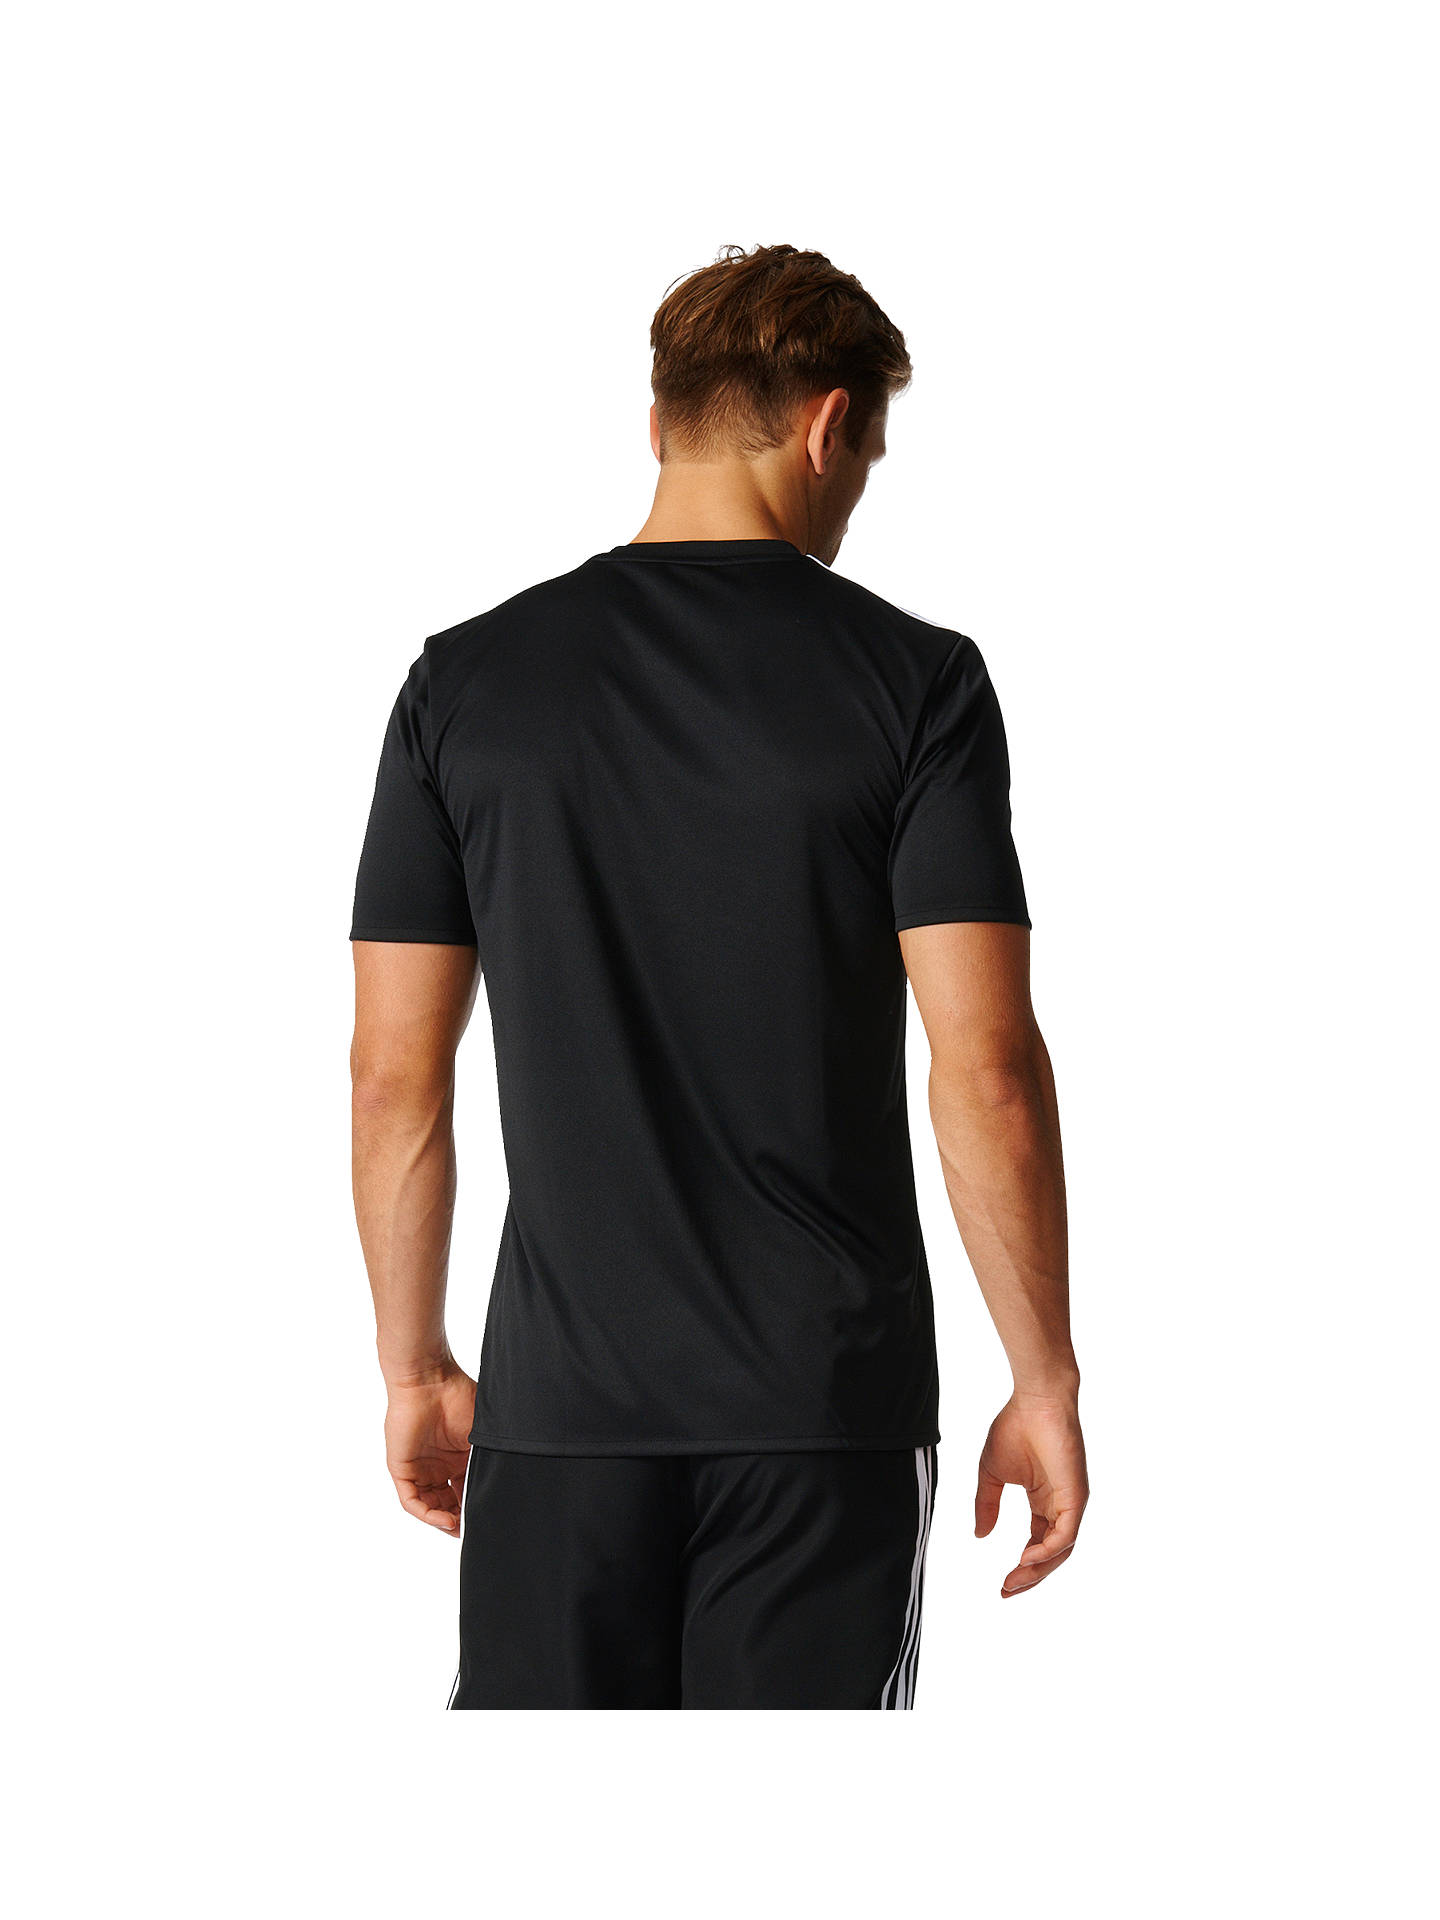 Adidas Tango Cage Graphic Football Jersey Top, Black at John